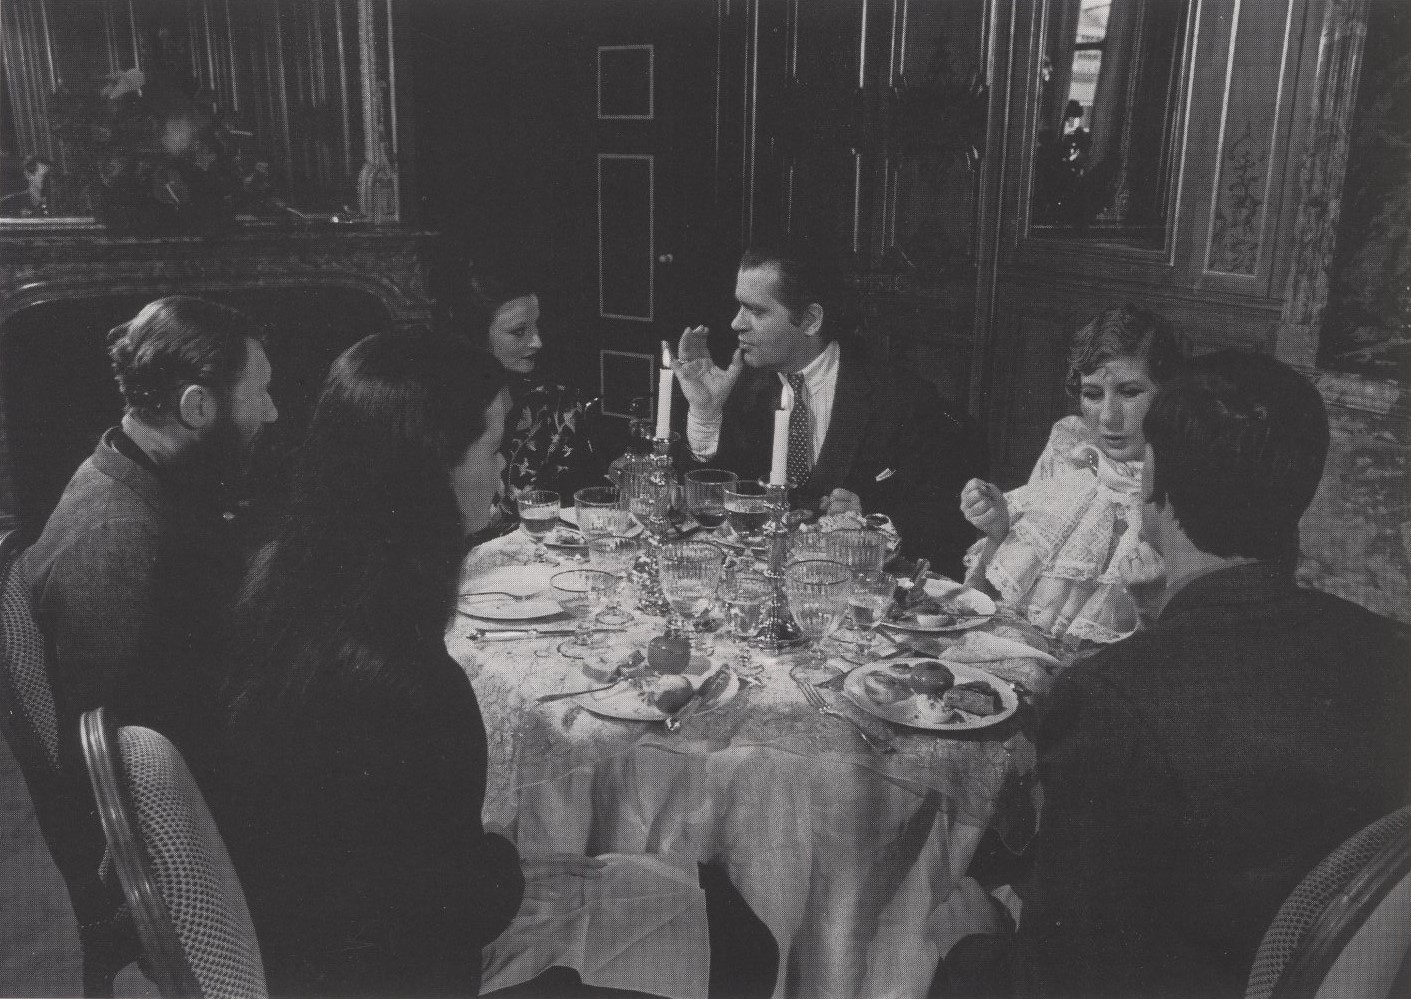 KARL LAGERFELD AND ANNA PAIGGI LUNCH AT RUE DE L'UNIVERSITE' DURING A TELEVISION SHOOT 1980 |PHOTOGRAPHY ARCHIVE JACQUES DE BASCHER